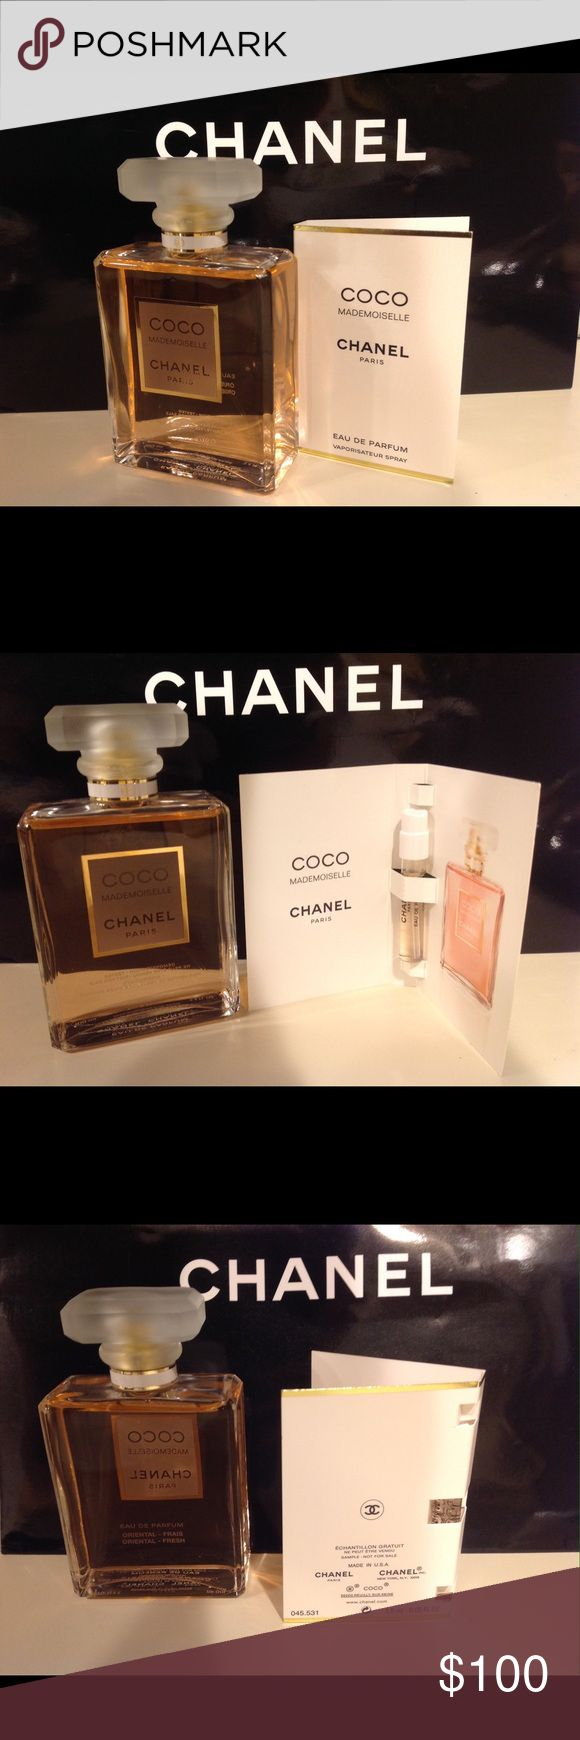 CHANEL COCO MADEMOISELLE 3.4 oz plus 1.5ml sample This is a full bottle of Coco Mademoiselle Chanel 3.4oz Eau de Parfum made in France plus one sample.  This is a wonderful smelling fragrance from Chanel I like this one the best out of them all. This is 100 % authentic Tester bottle which is the same as retail bottle, they just use them as testers. Make a great holiday gift. Chanel never goes on sale. Dont miss this offer. I will include the Chanel bag if you want it.  See photos for more…